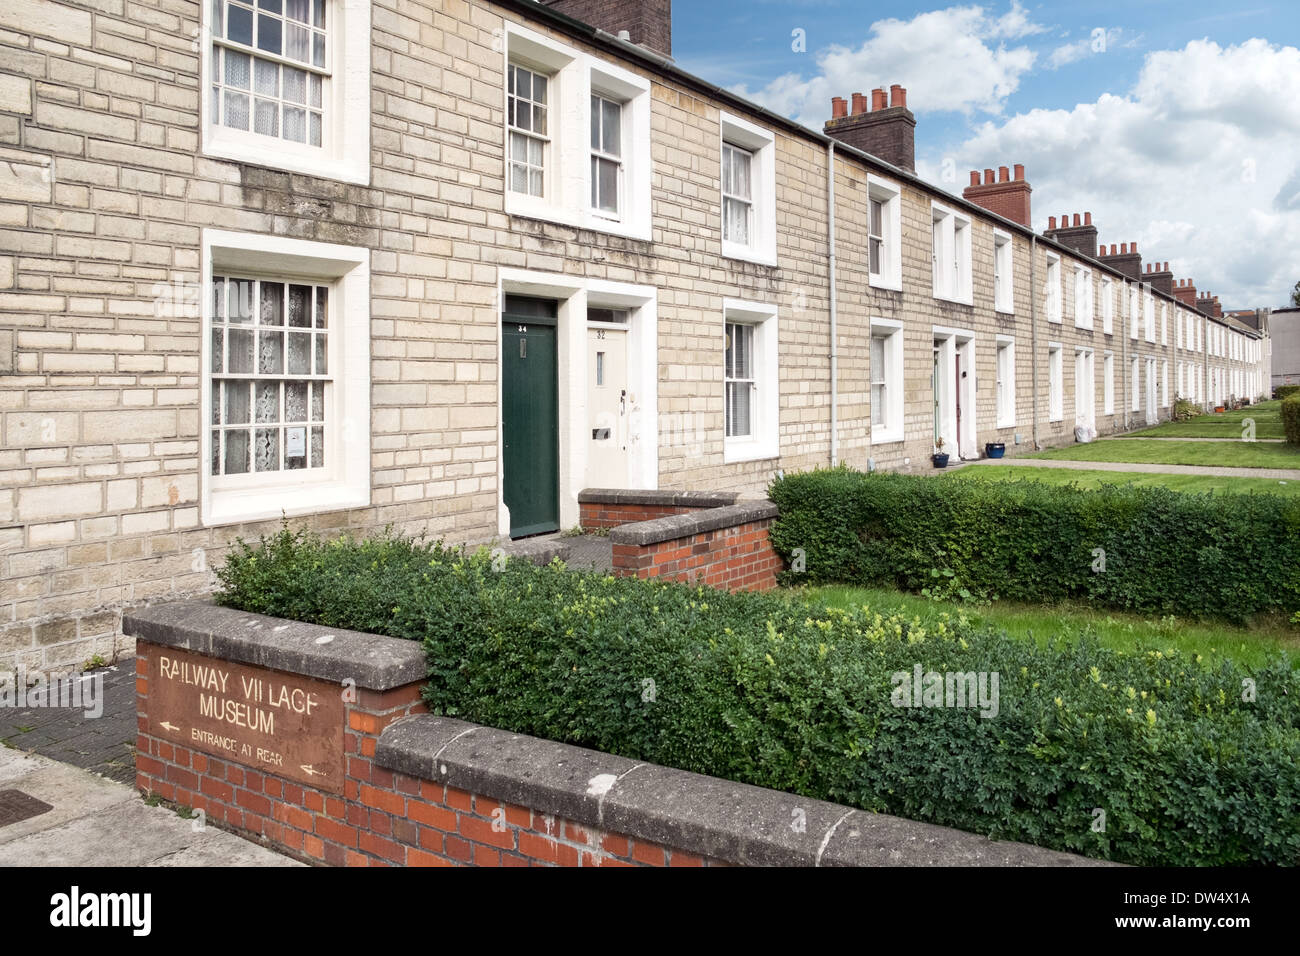 A row of cottages in the preserved historic GWR railway village in Swindon, Wiltshire & the sign to the museum - Stock Image